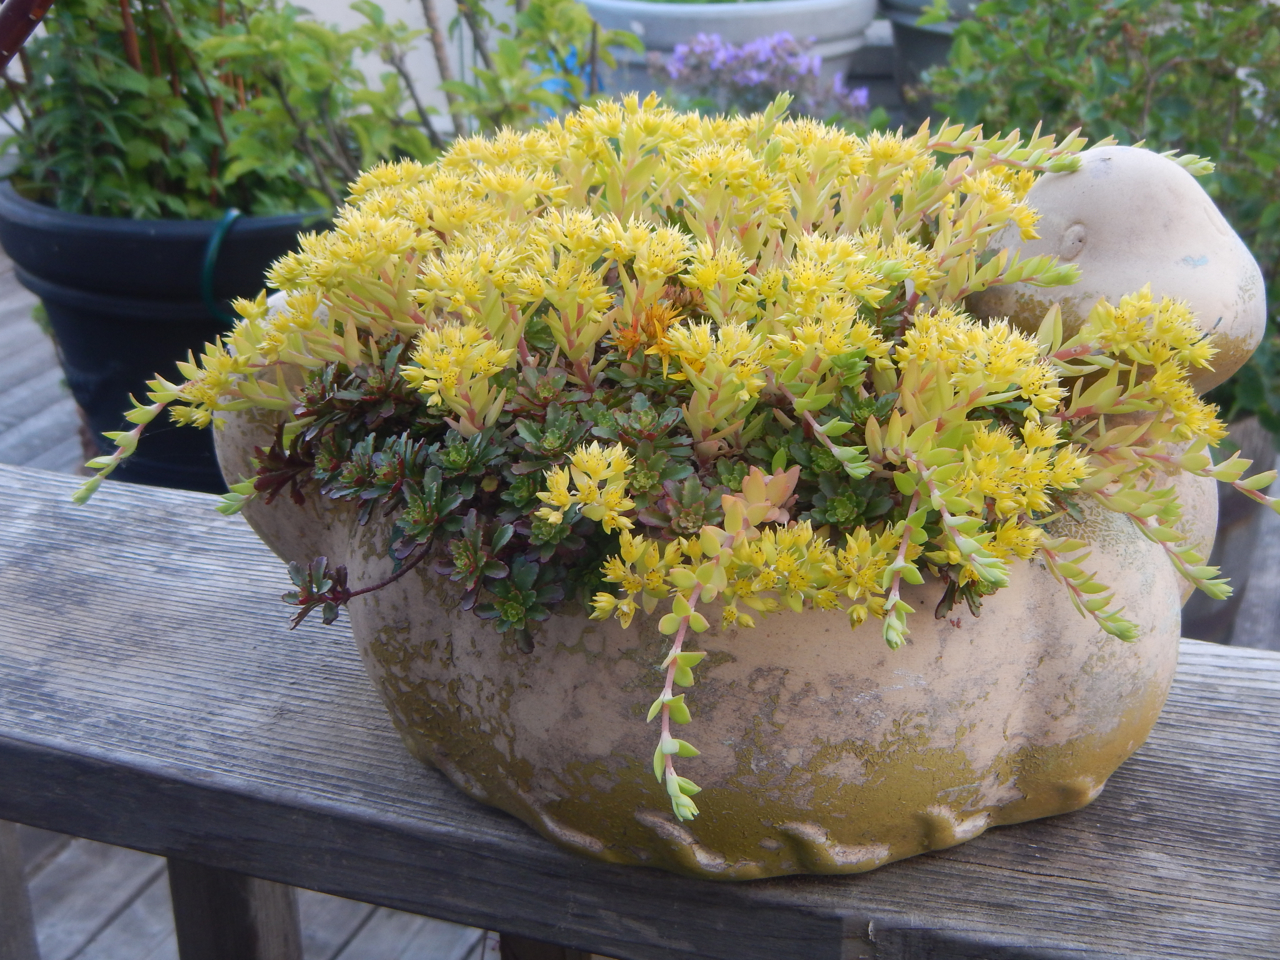 Overall Performance Award 2018 Mossies  Stringy Stonecrop ( Sedum sarmentosum )  Stringy Stonecrop or Gold Moss is a vigorous, chartreuse to lemony groundcover. We've grown it in containers for its short stature, colorful foliage, hanging stolons, and bright yellow, nectar-filled flowers. In ground  Sedum sarmentosum  takes off. It forms a golden carpet in sun or shade, clay or sandy, up to and around larger plants. It's best season is spring, but it looks neat and tidy most of the year.